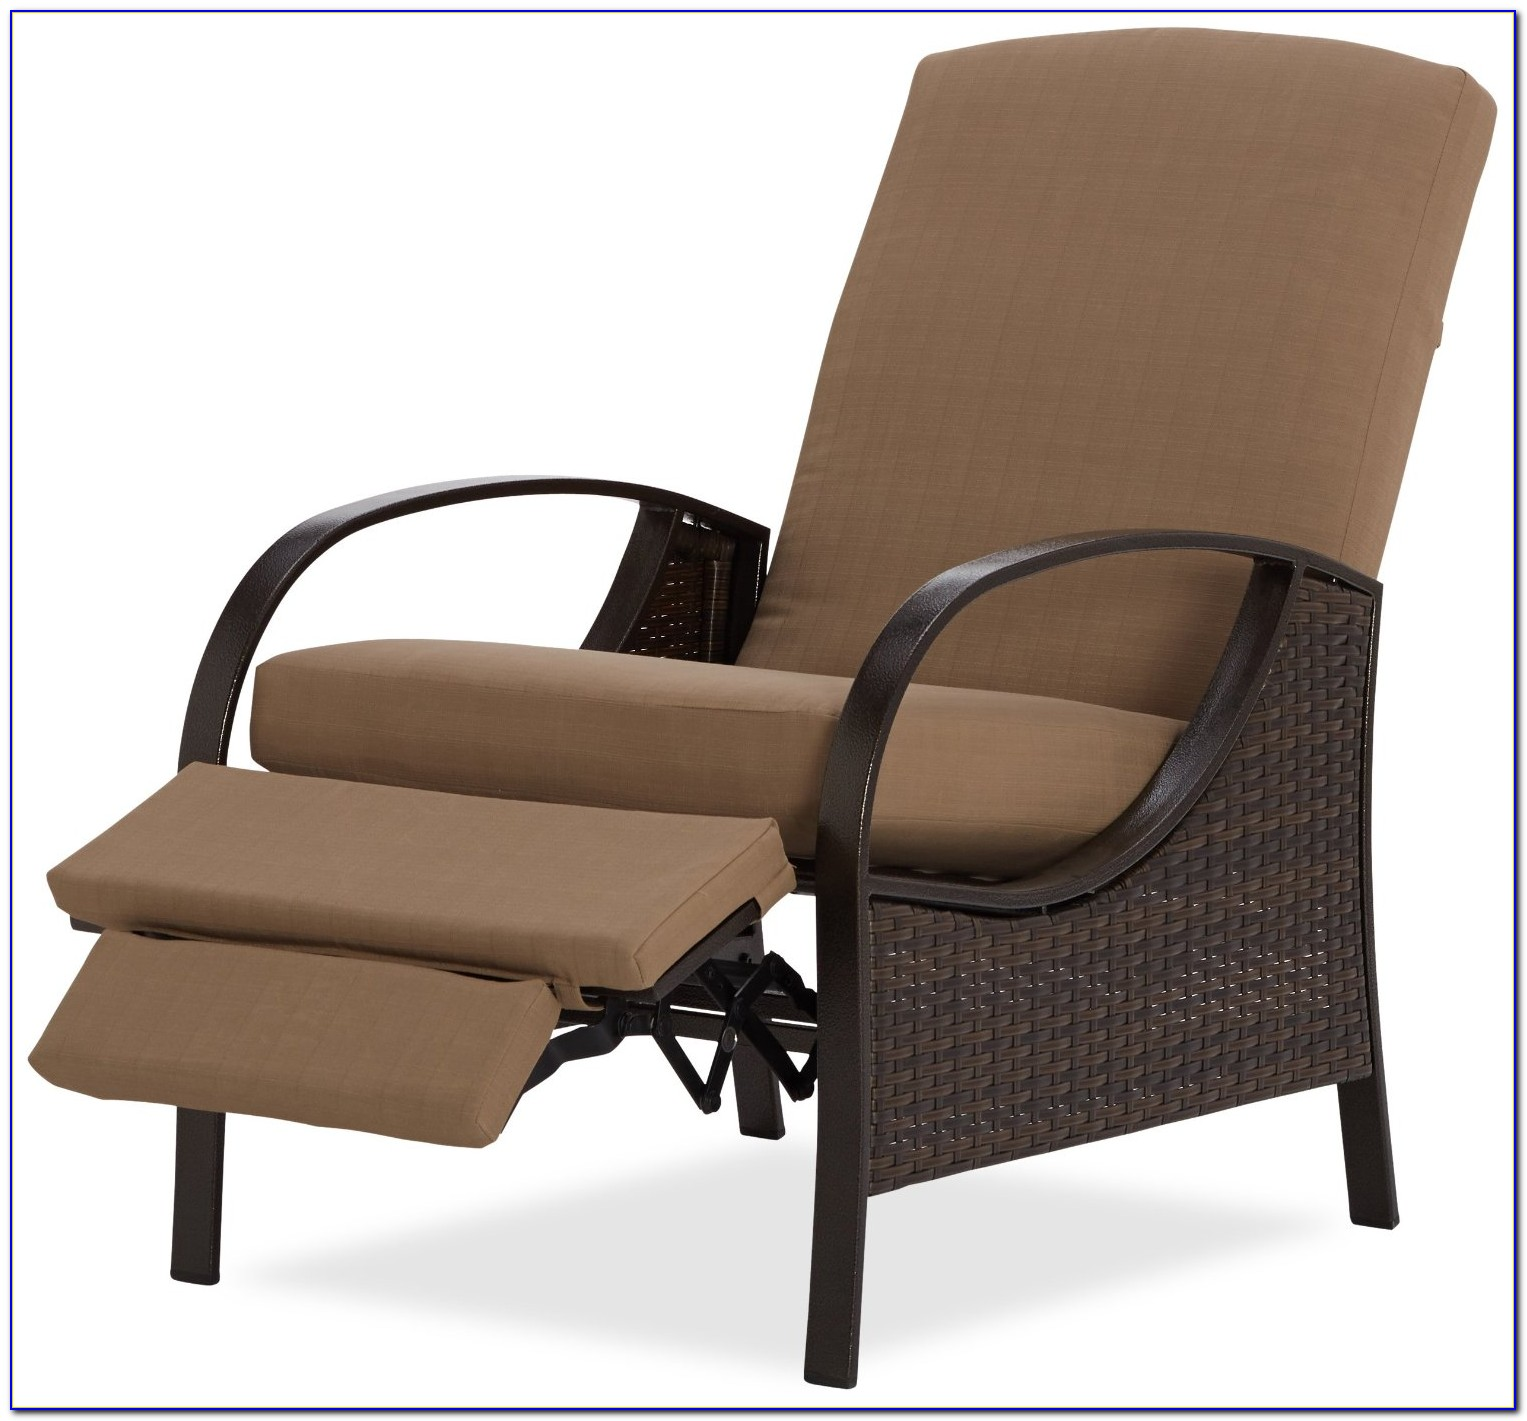 Outdoor Recliner Chair With Ottoman